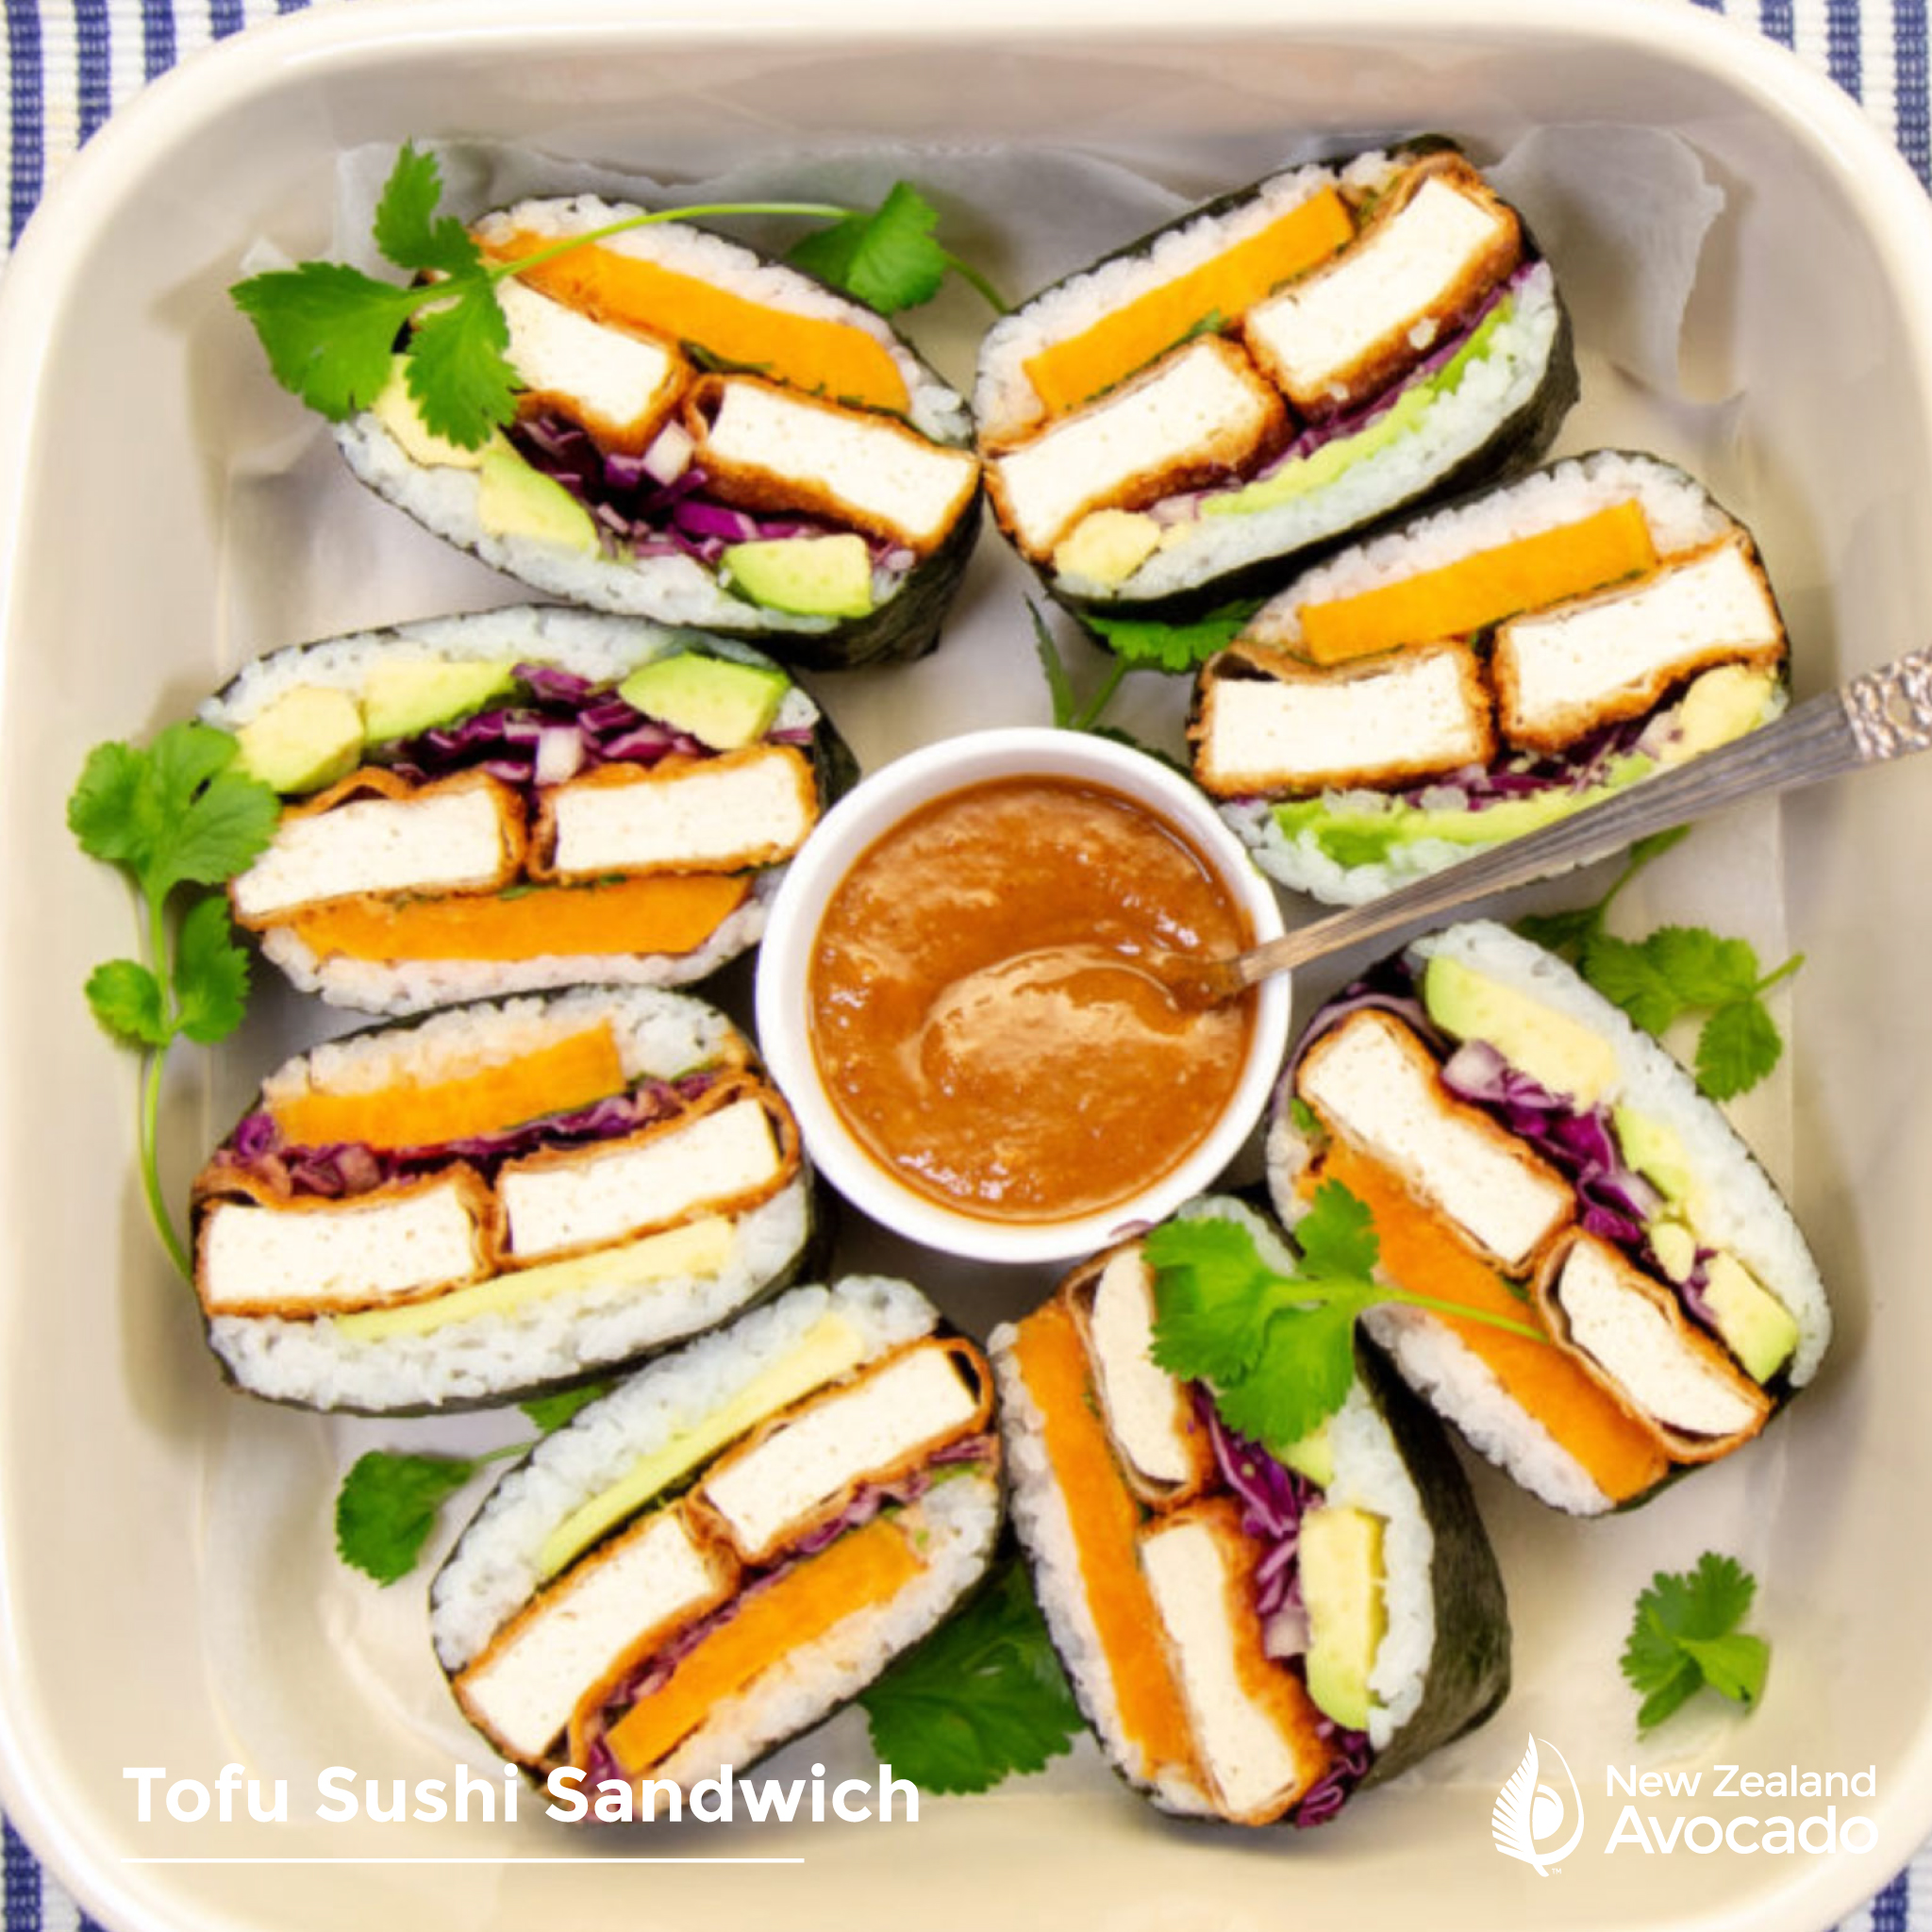 Avocado & Tofu Sushi Sandwich with Tahini Sauce